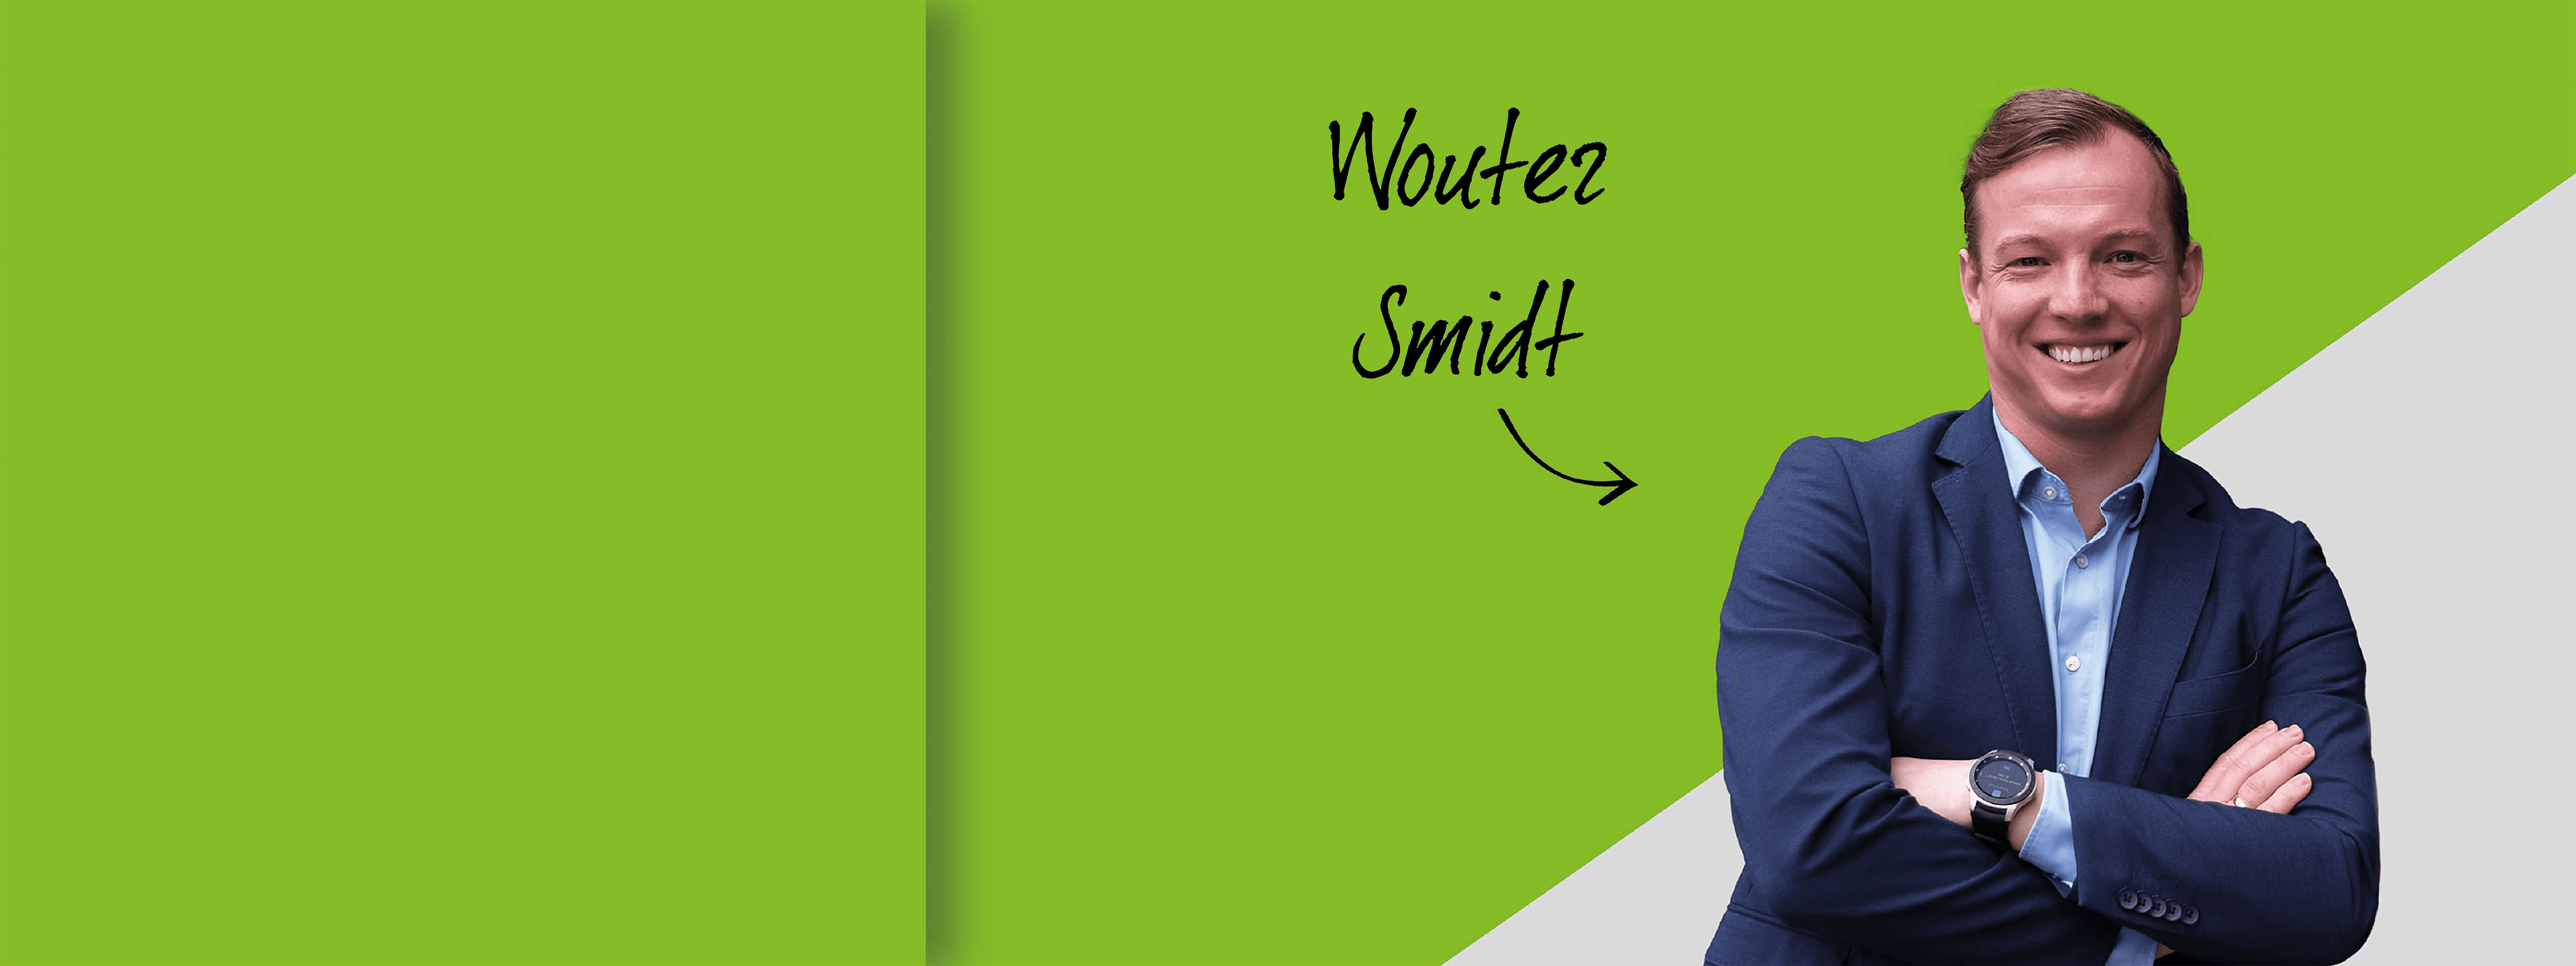 Wouter Smidt, Kroese Wevers